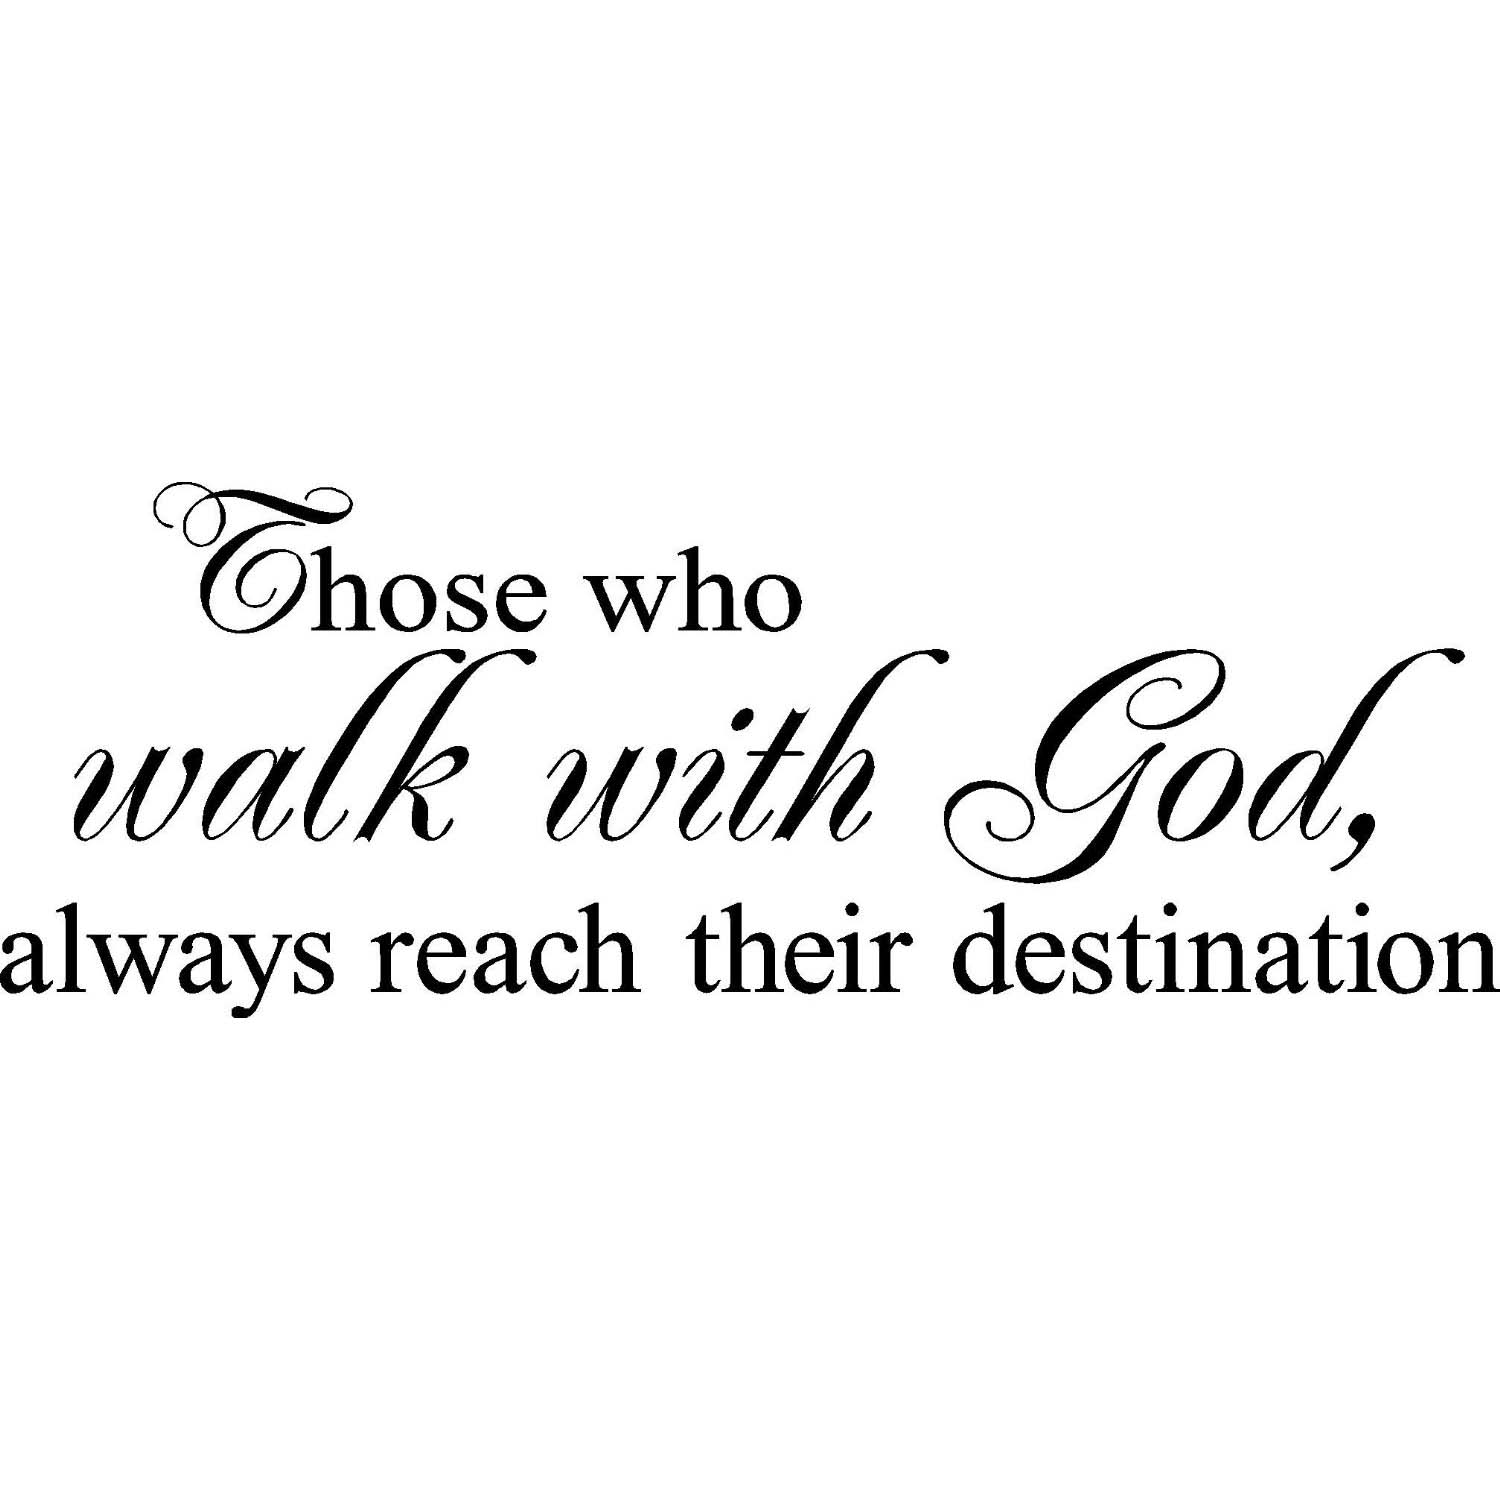 Vinyl Designs 'Those who walk with God always reach their destination' Vinyl Wall Art Lettering